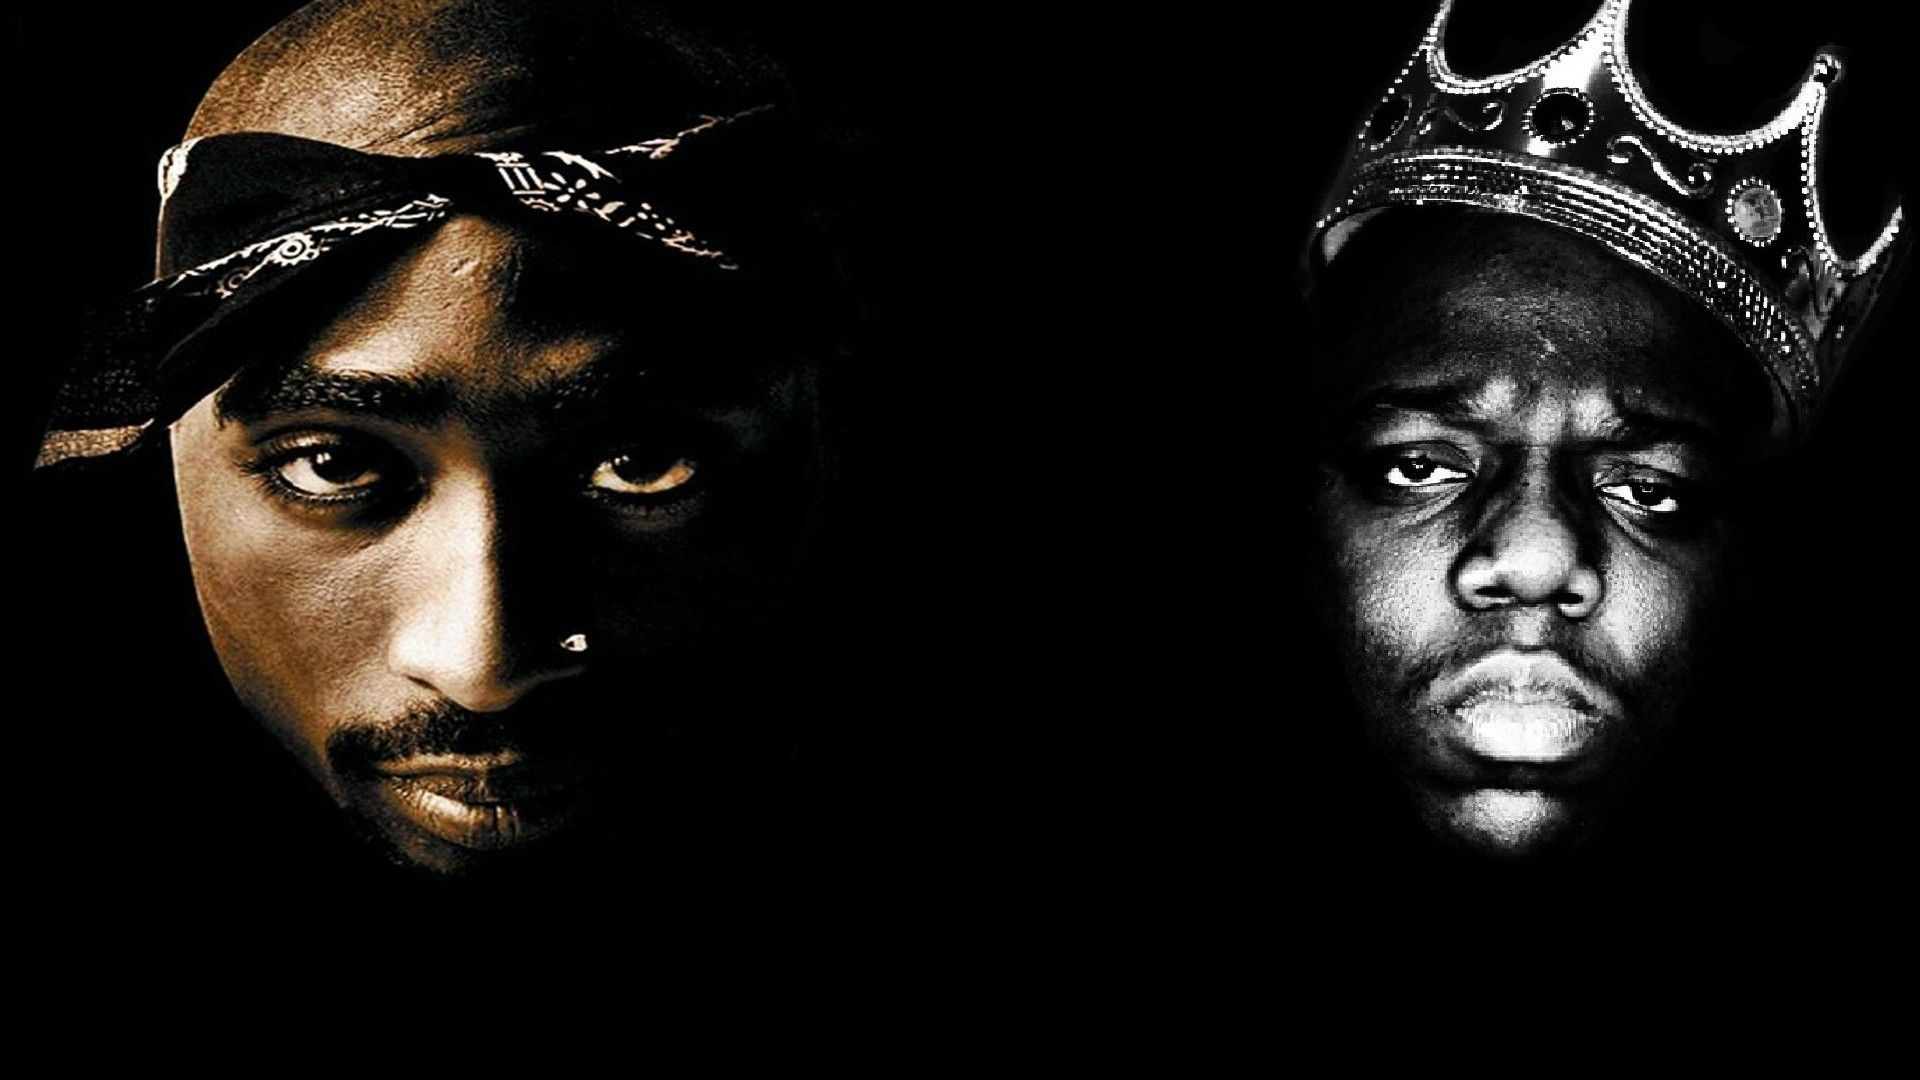 1920x1080 TUPAC BIGGIE SMALLS gangsta rapper rap hip hop f